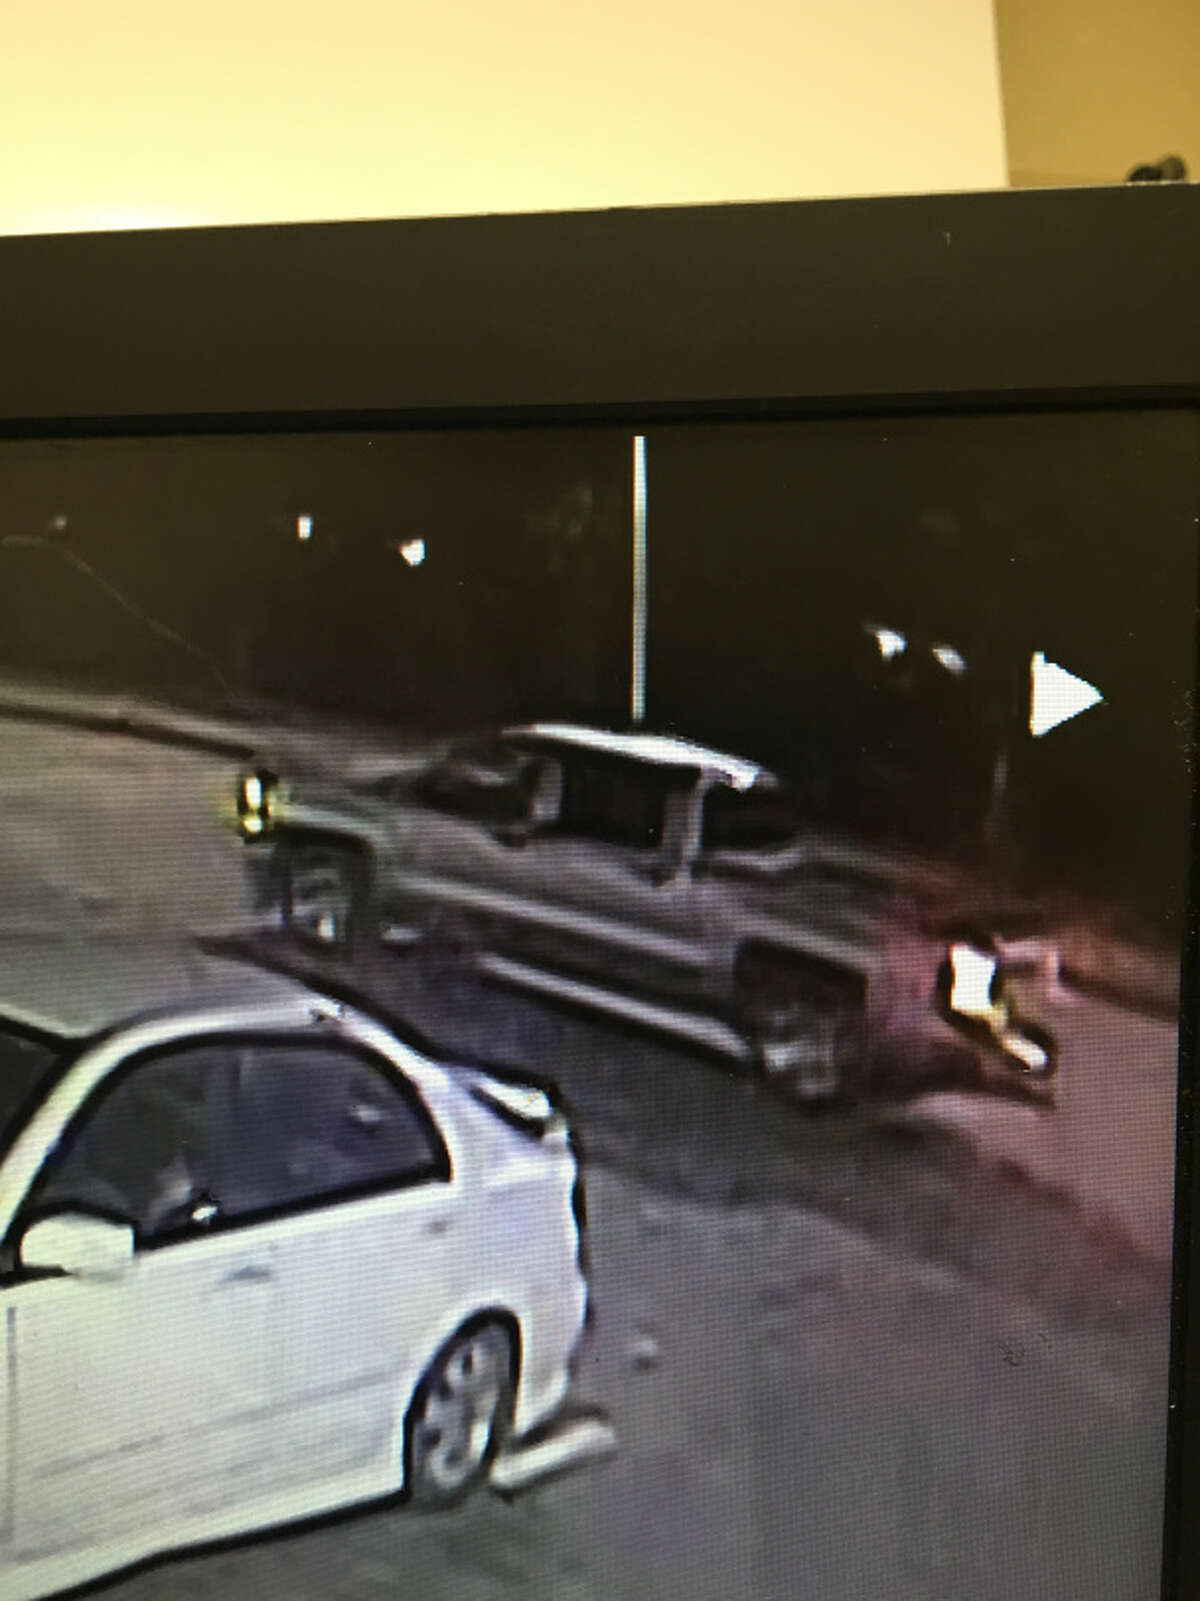 Former Miss South Dakota contestant Maria Anderson, 21, and her boyfriend Tyler Sheets, 23, were hit by a truck as they walked in the 1400 block of S. Padre Island Dr. around 1:30 a.m. August 14 near a Sonic, police say. The vehicle that hit the couple fled the scene. Police released images of the truck in question and are asking the public for help in identifying the suspect.